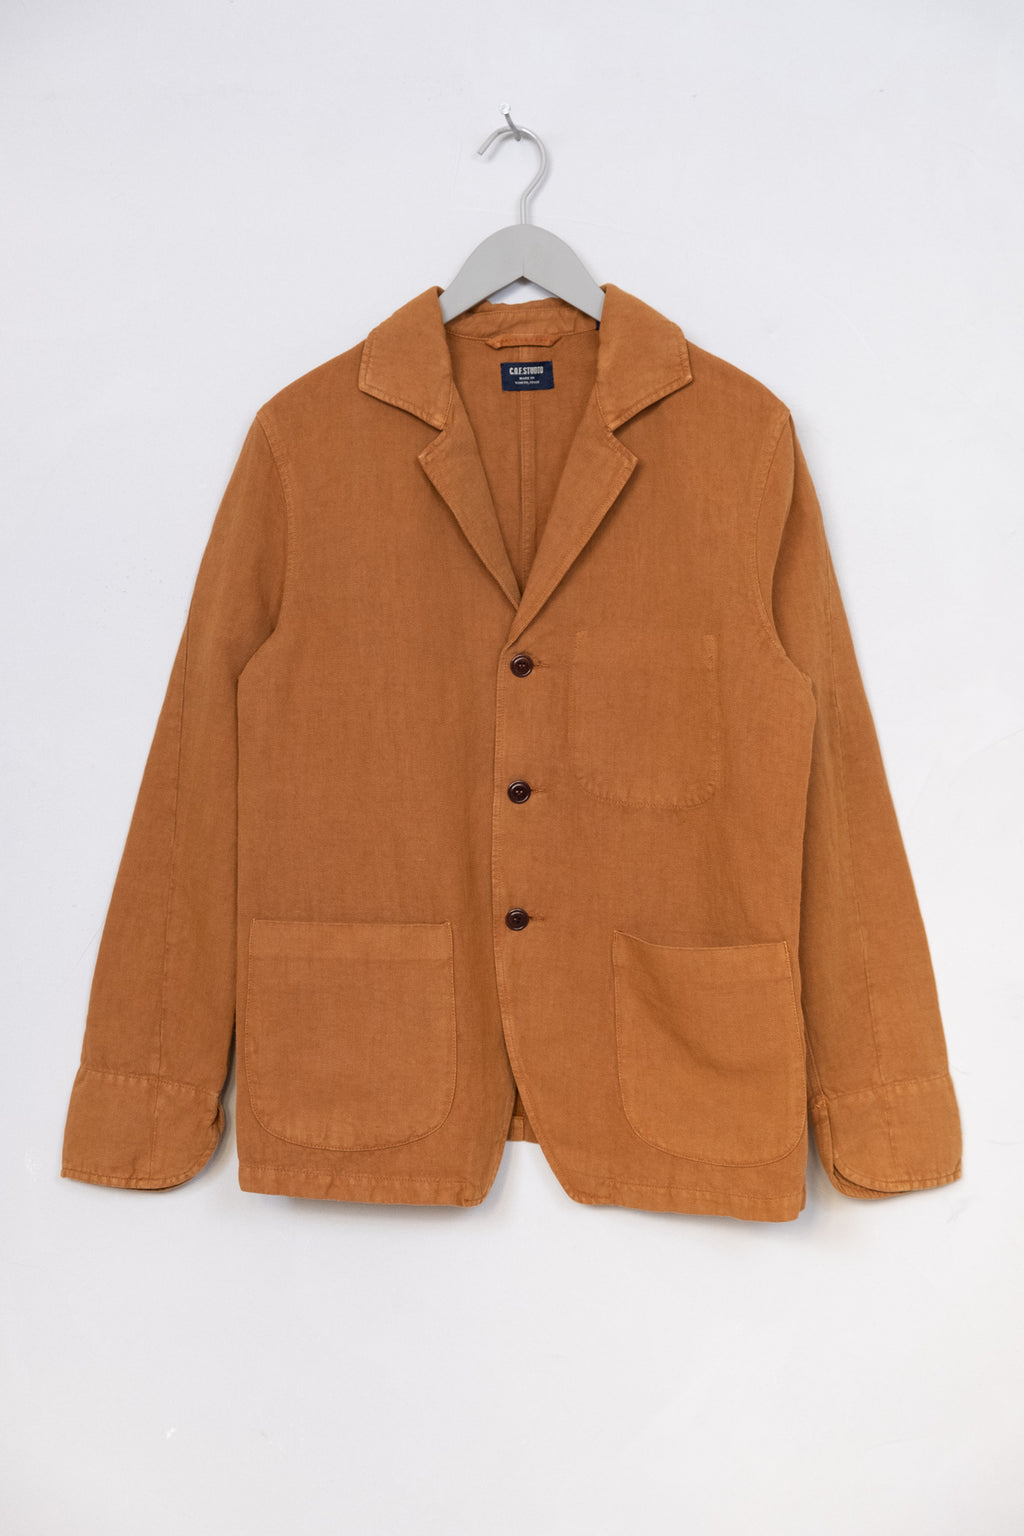 Painter Jacket Cotton Linen Twill - Duck